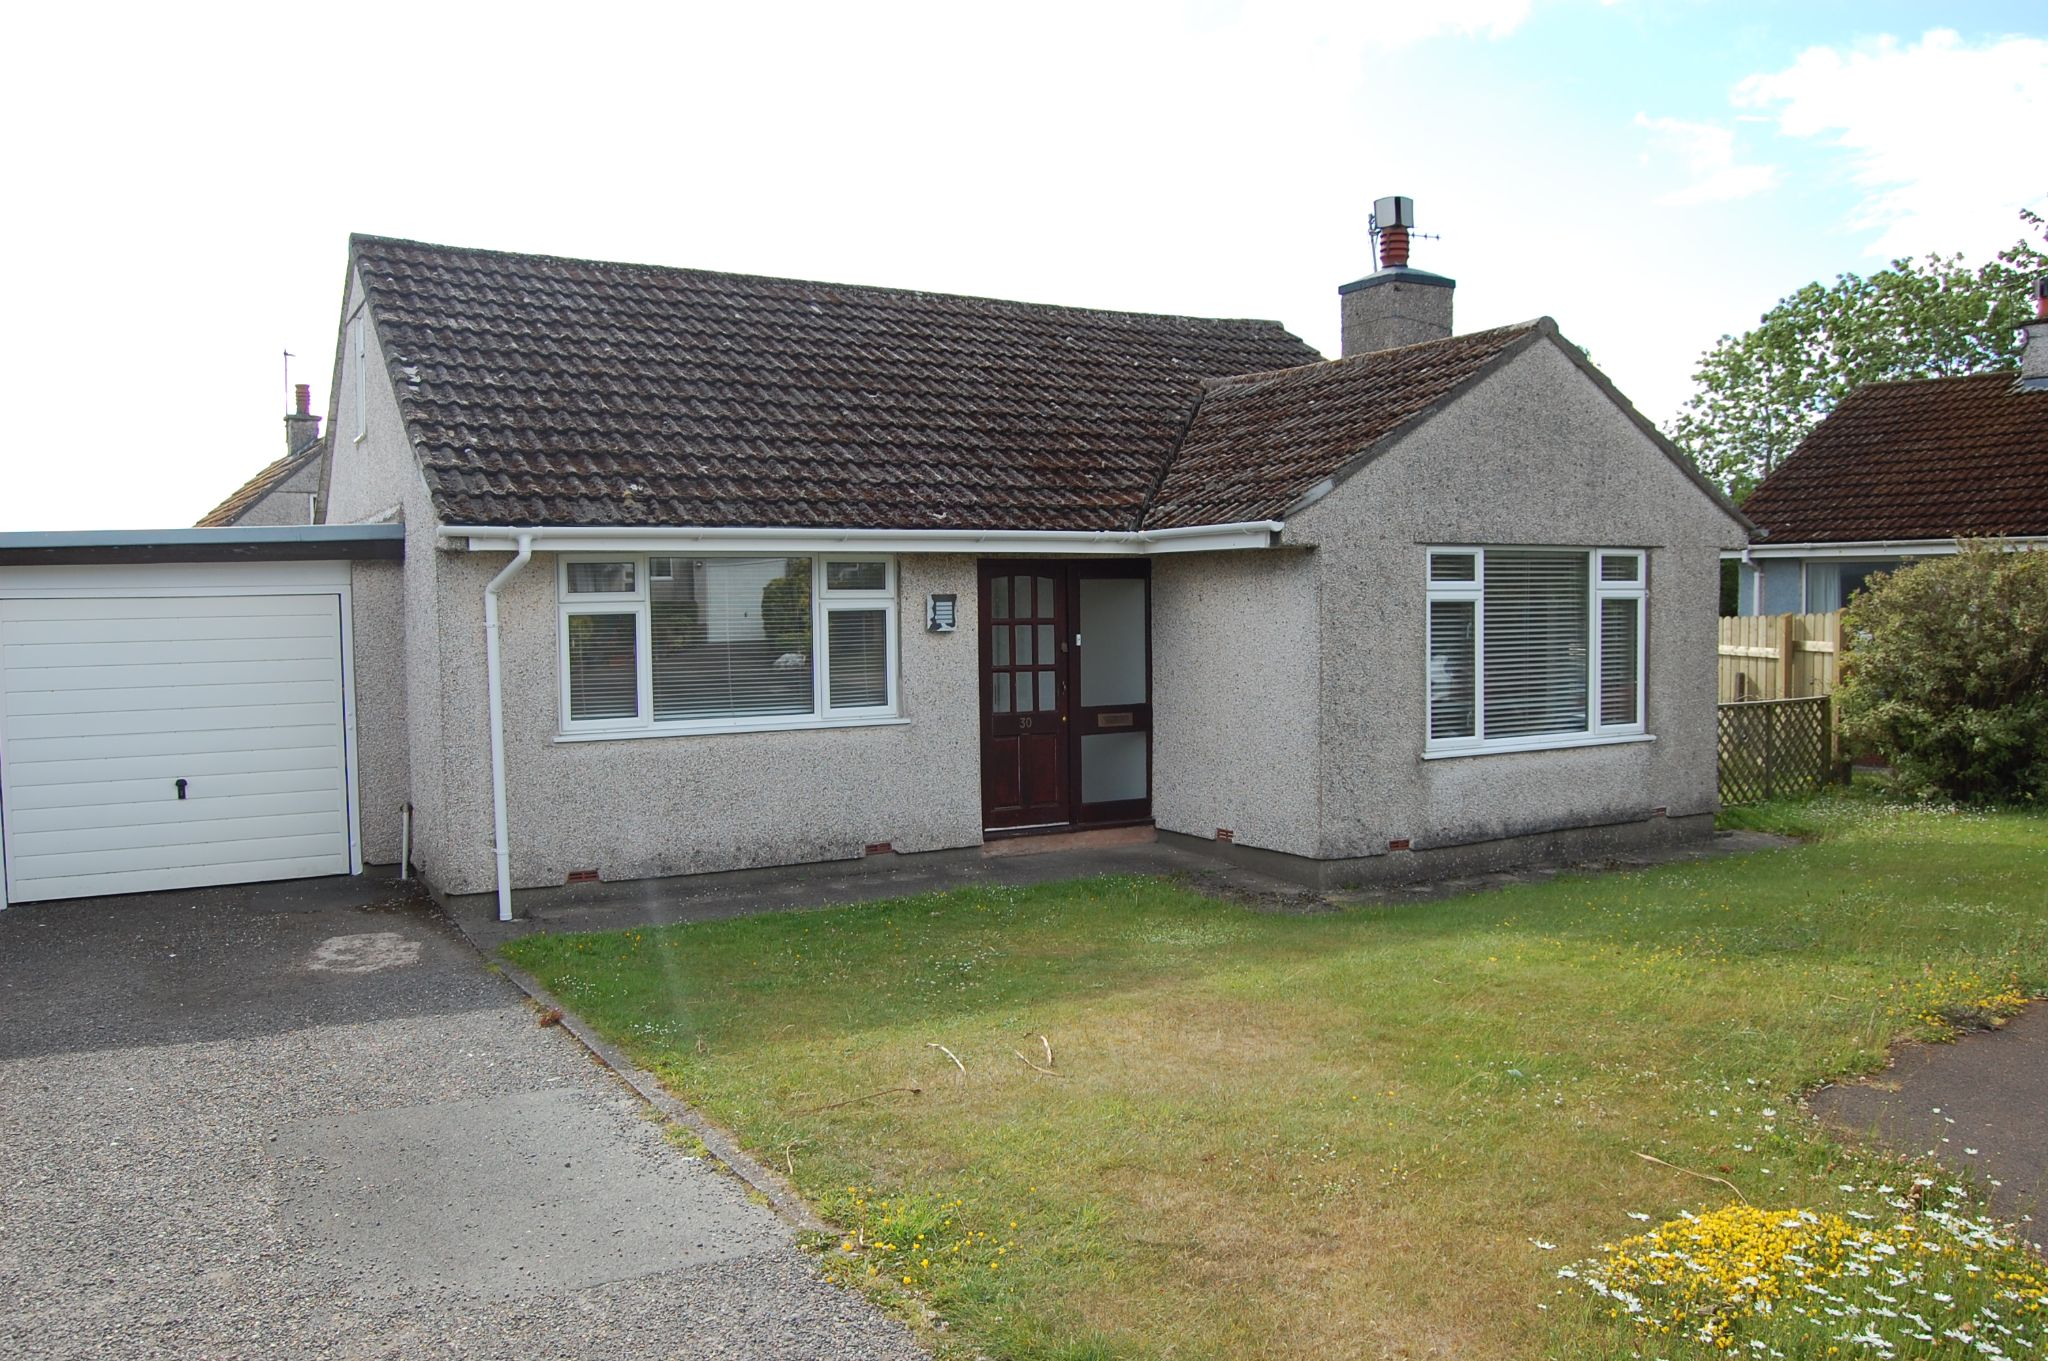 3 bedroom detached bungalow Let Agreed in Onchan - Photograph 1